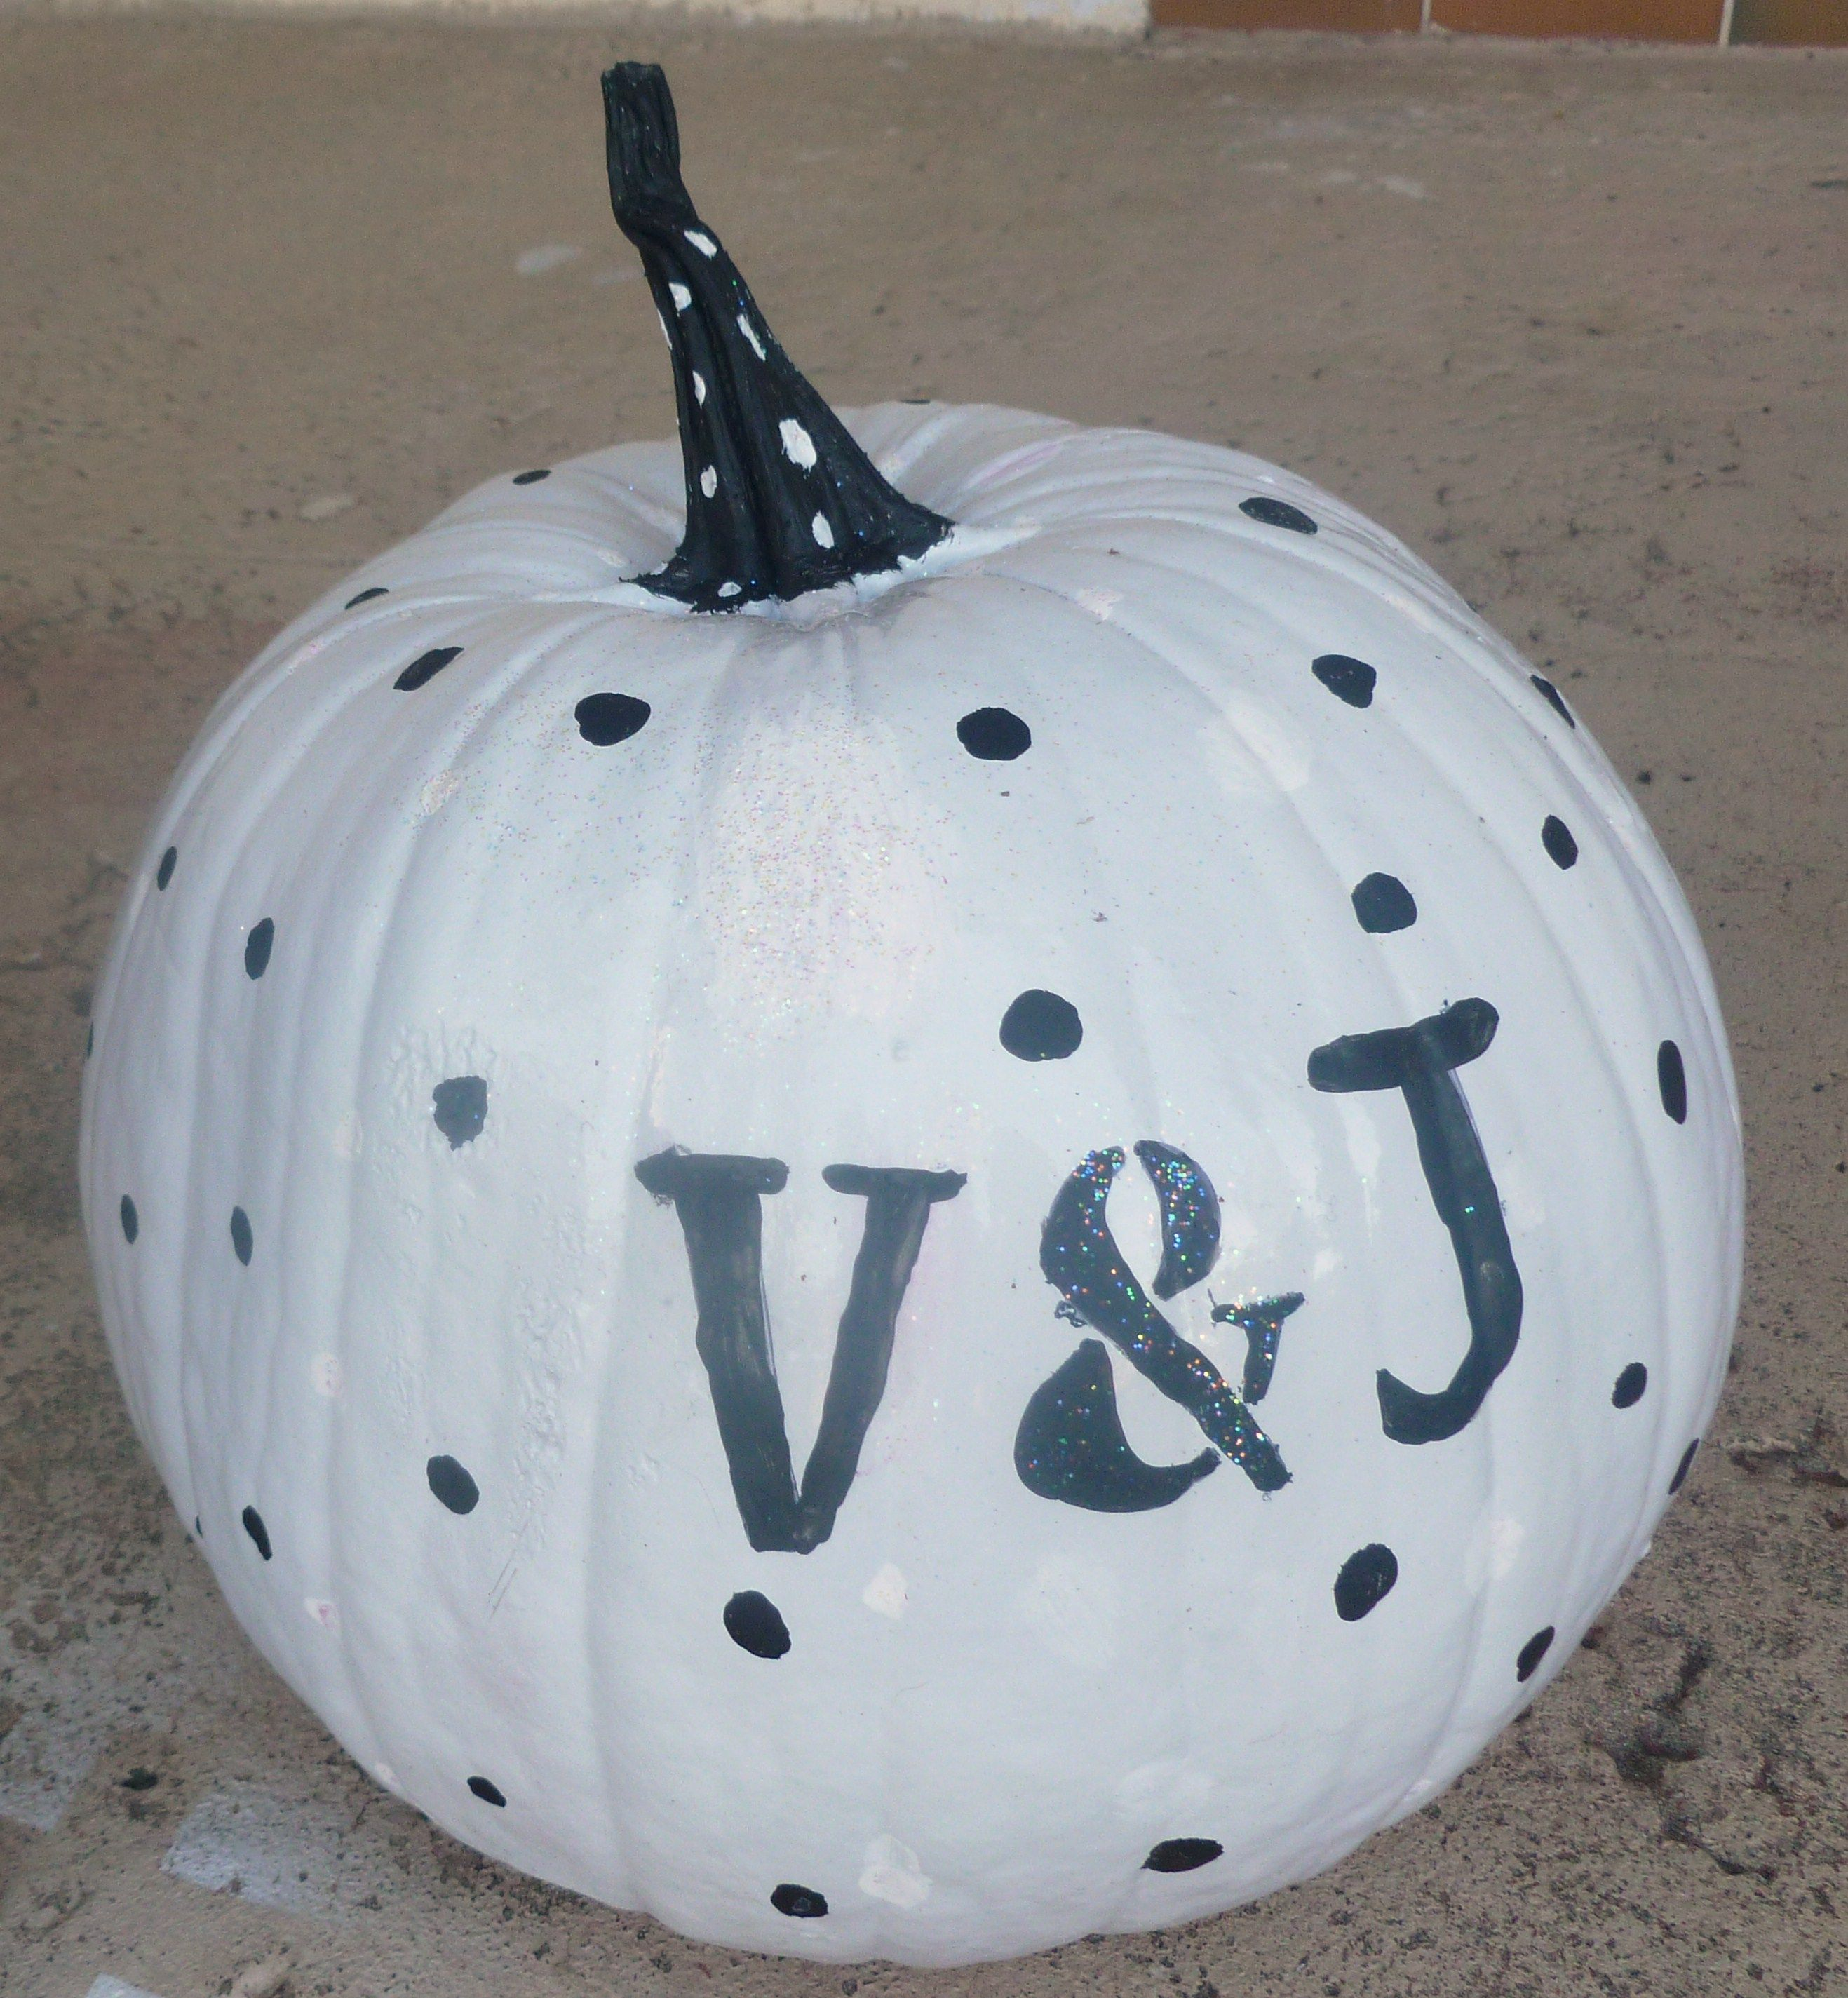 Painted, added lots of dots, and finished our couple pumpkin